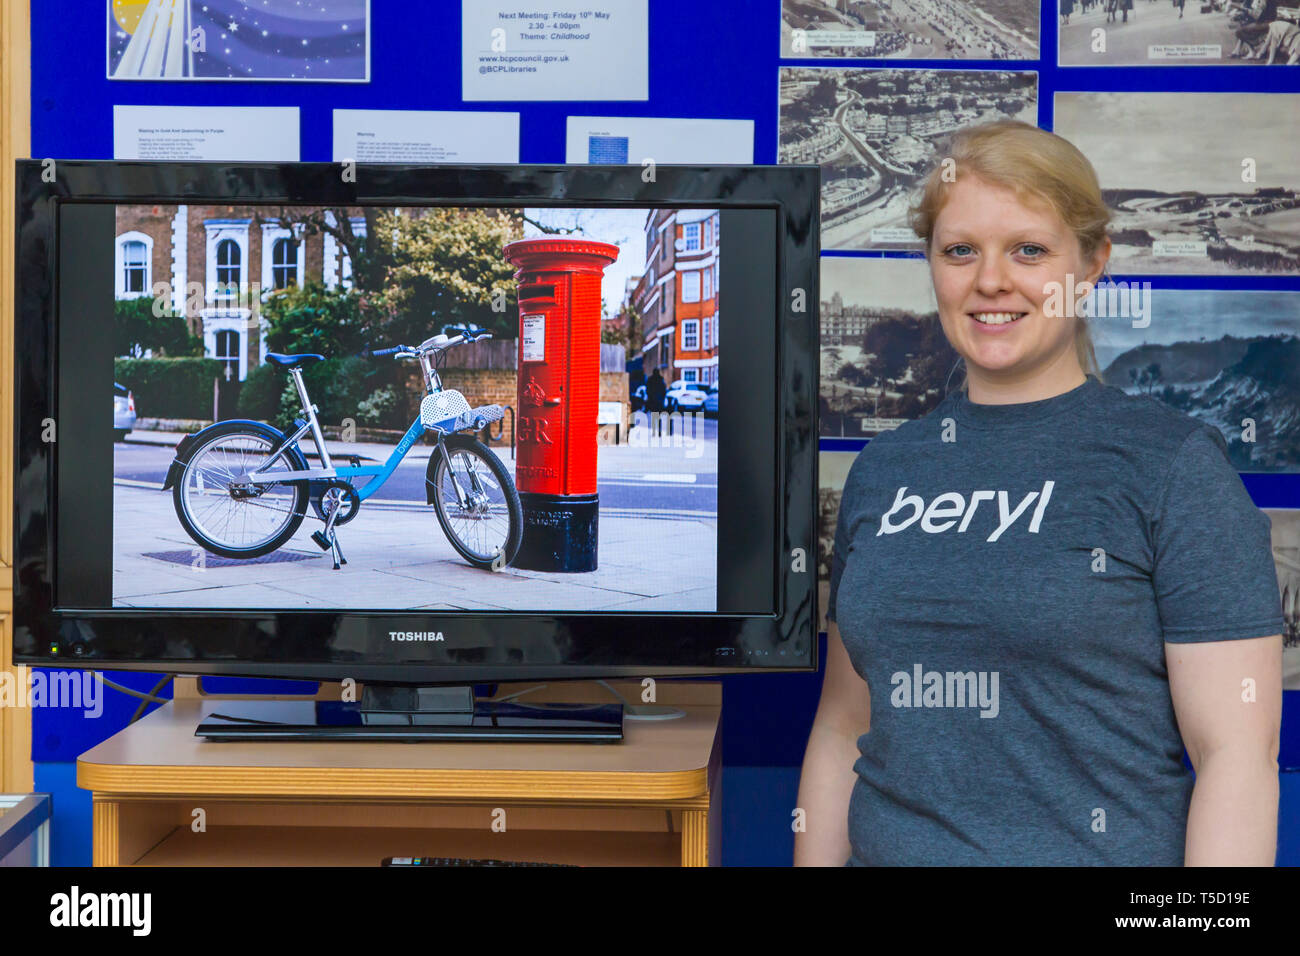 Bournemouth Library, Bournemouth, Dorset, UK. 24th Apr, 2019. Residents get the opportunity to get a first glimpse of the Beryl Bikes, meet the Beryl Team and find out more, aiming to get more people using bikes and less cars on the roads. Operator Beryl plan to launch Beryl's first bike share scheme in Bournemouth and Poole next month with 50 bikes initially, rising to 1000. Riders will secure and leave the bikes in 'Beryls Bays' parking zones, gaining access using an app - the bikes weigh approx 5kg with built in lights and equipped with GPS tracking. Credit: Carolyn Jenkins/Alamy Live News - Stock Image